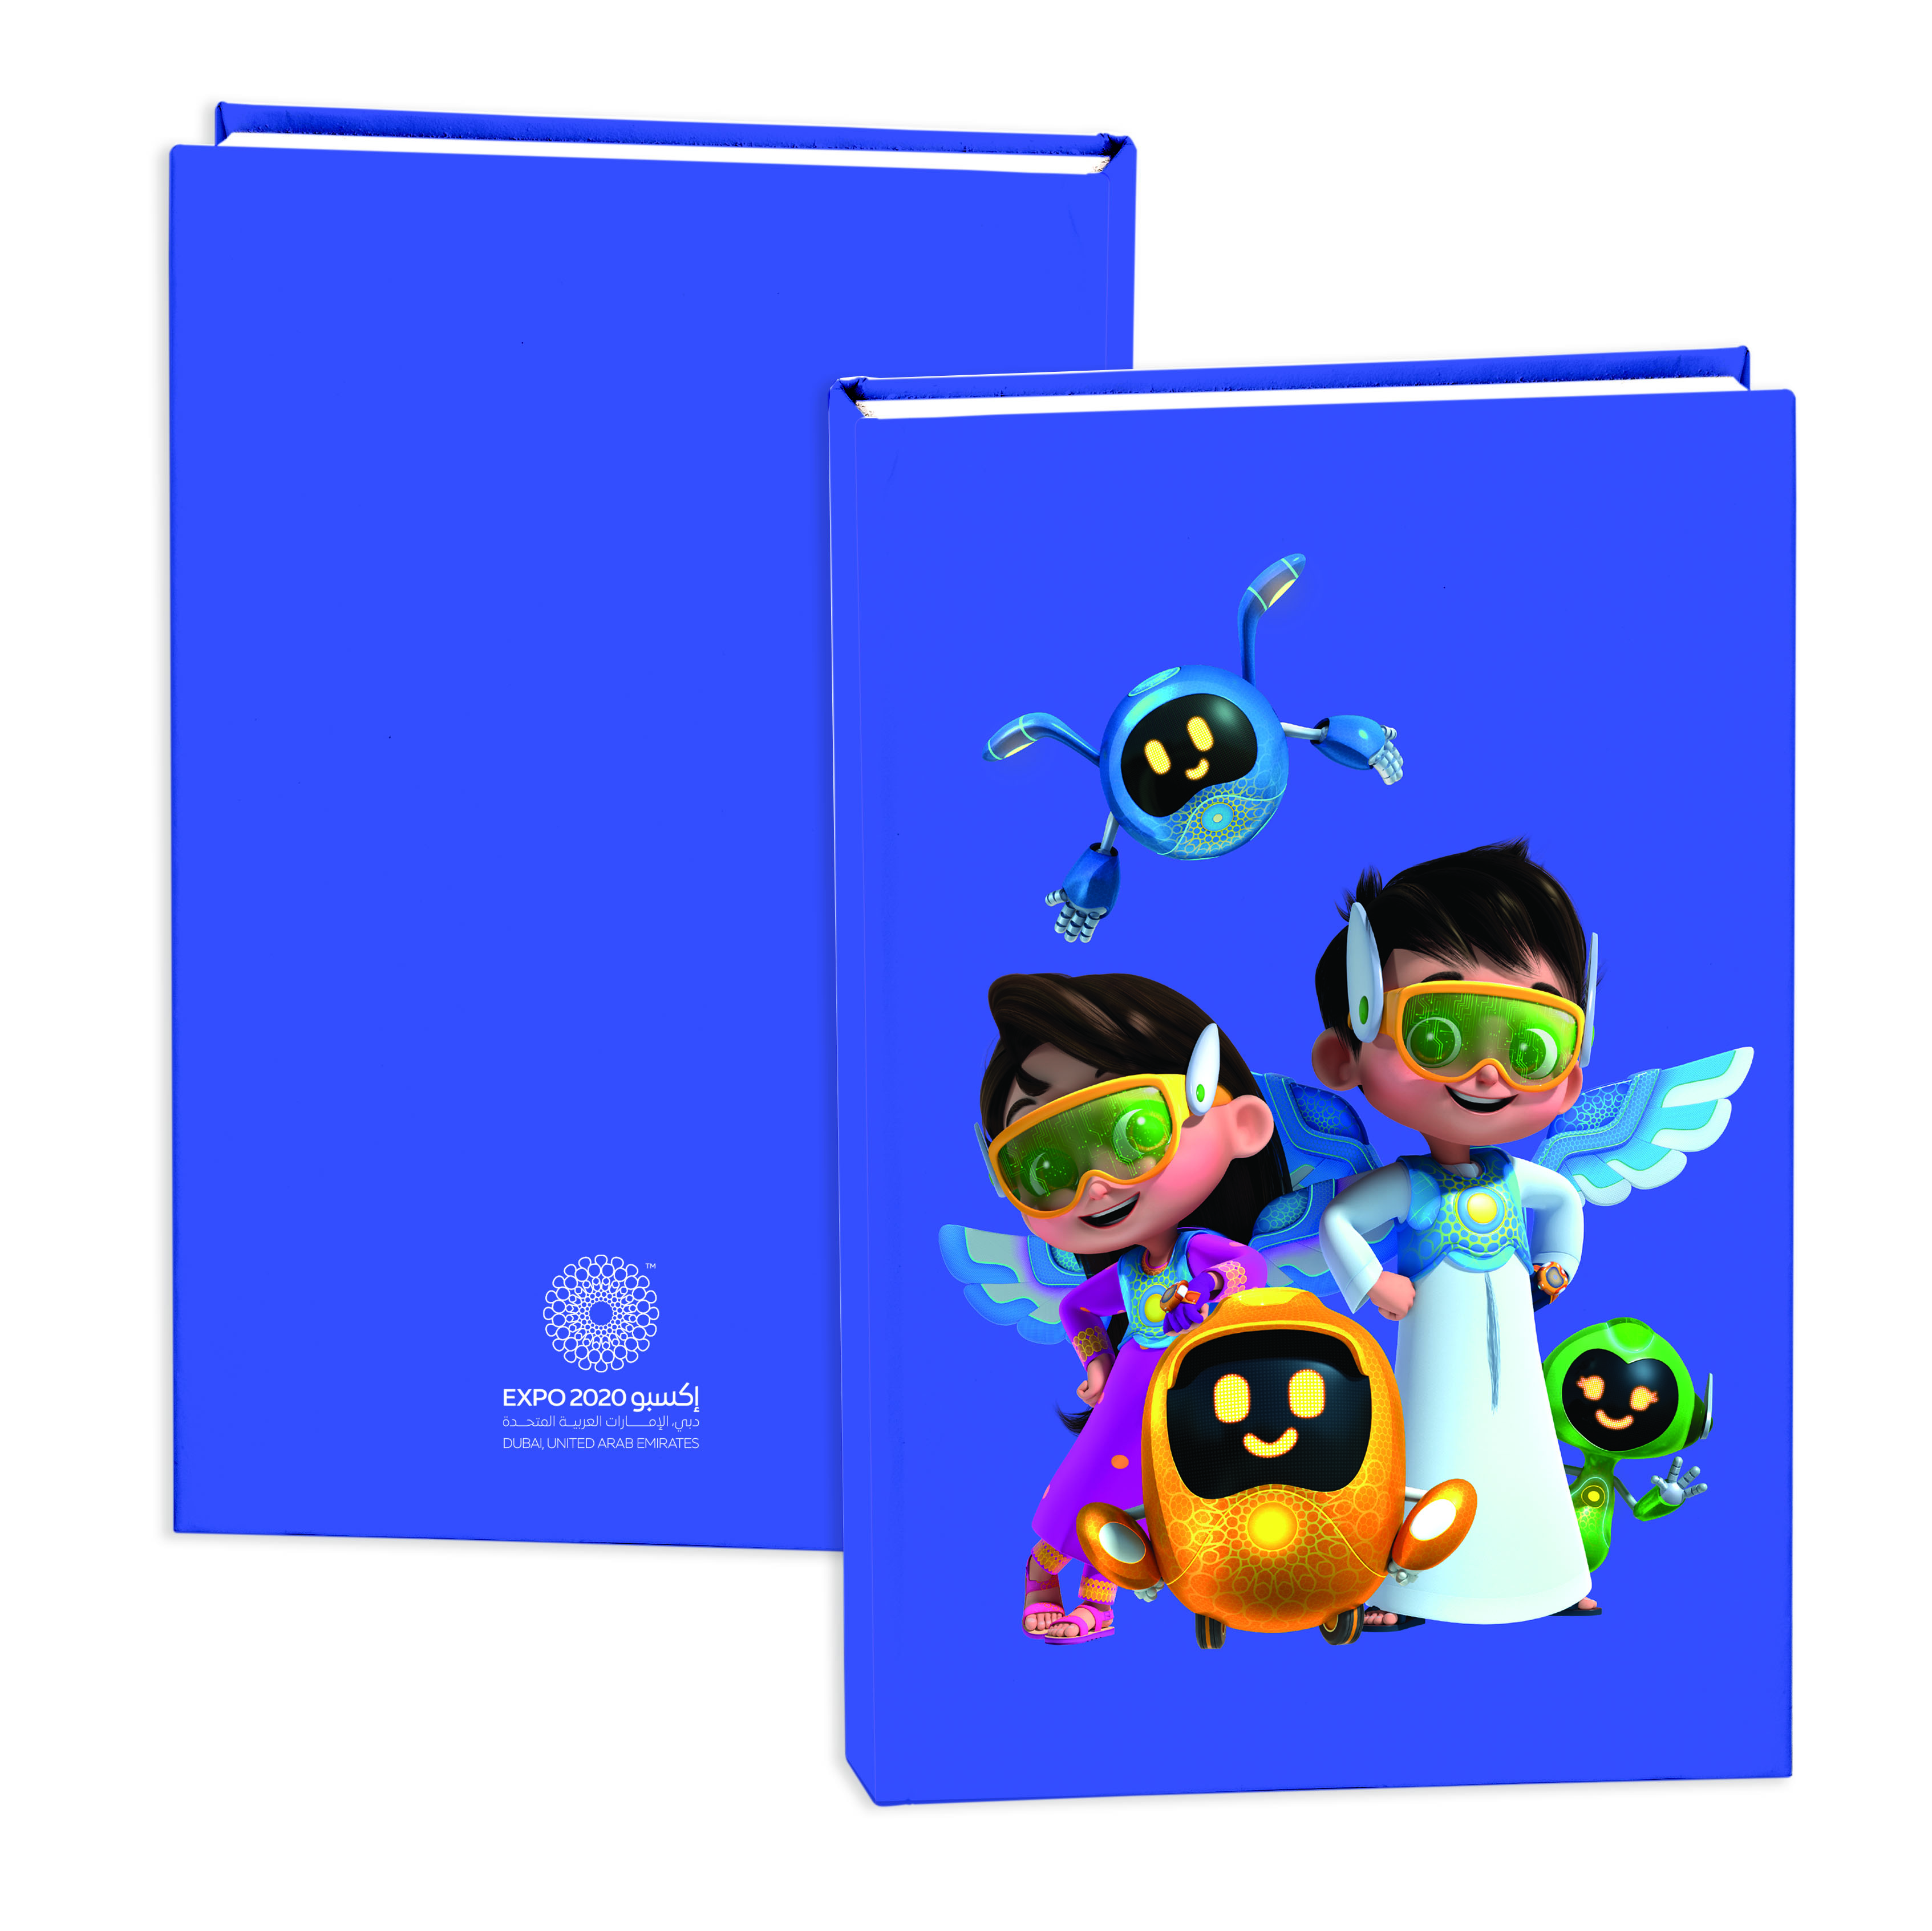 Expo 2020 Dubai Mascots Family A4 Hardcase Exercise Books Pack of 2 - 192 Pages